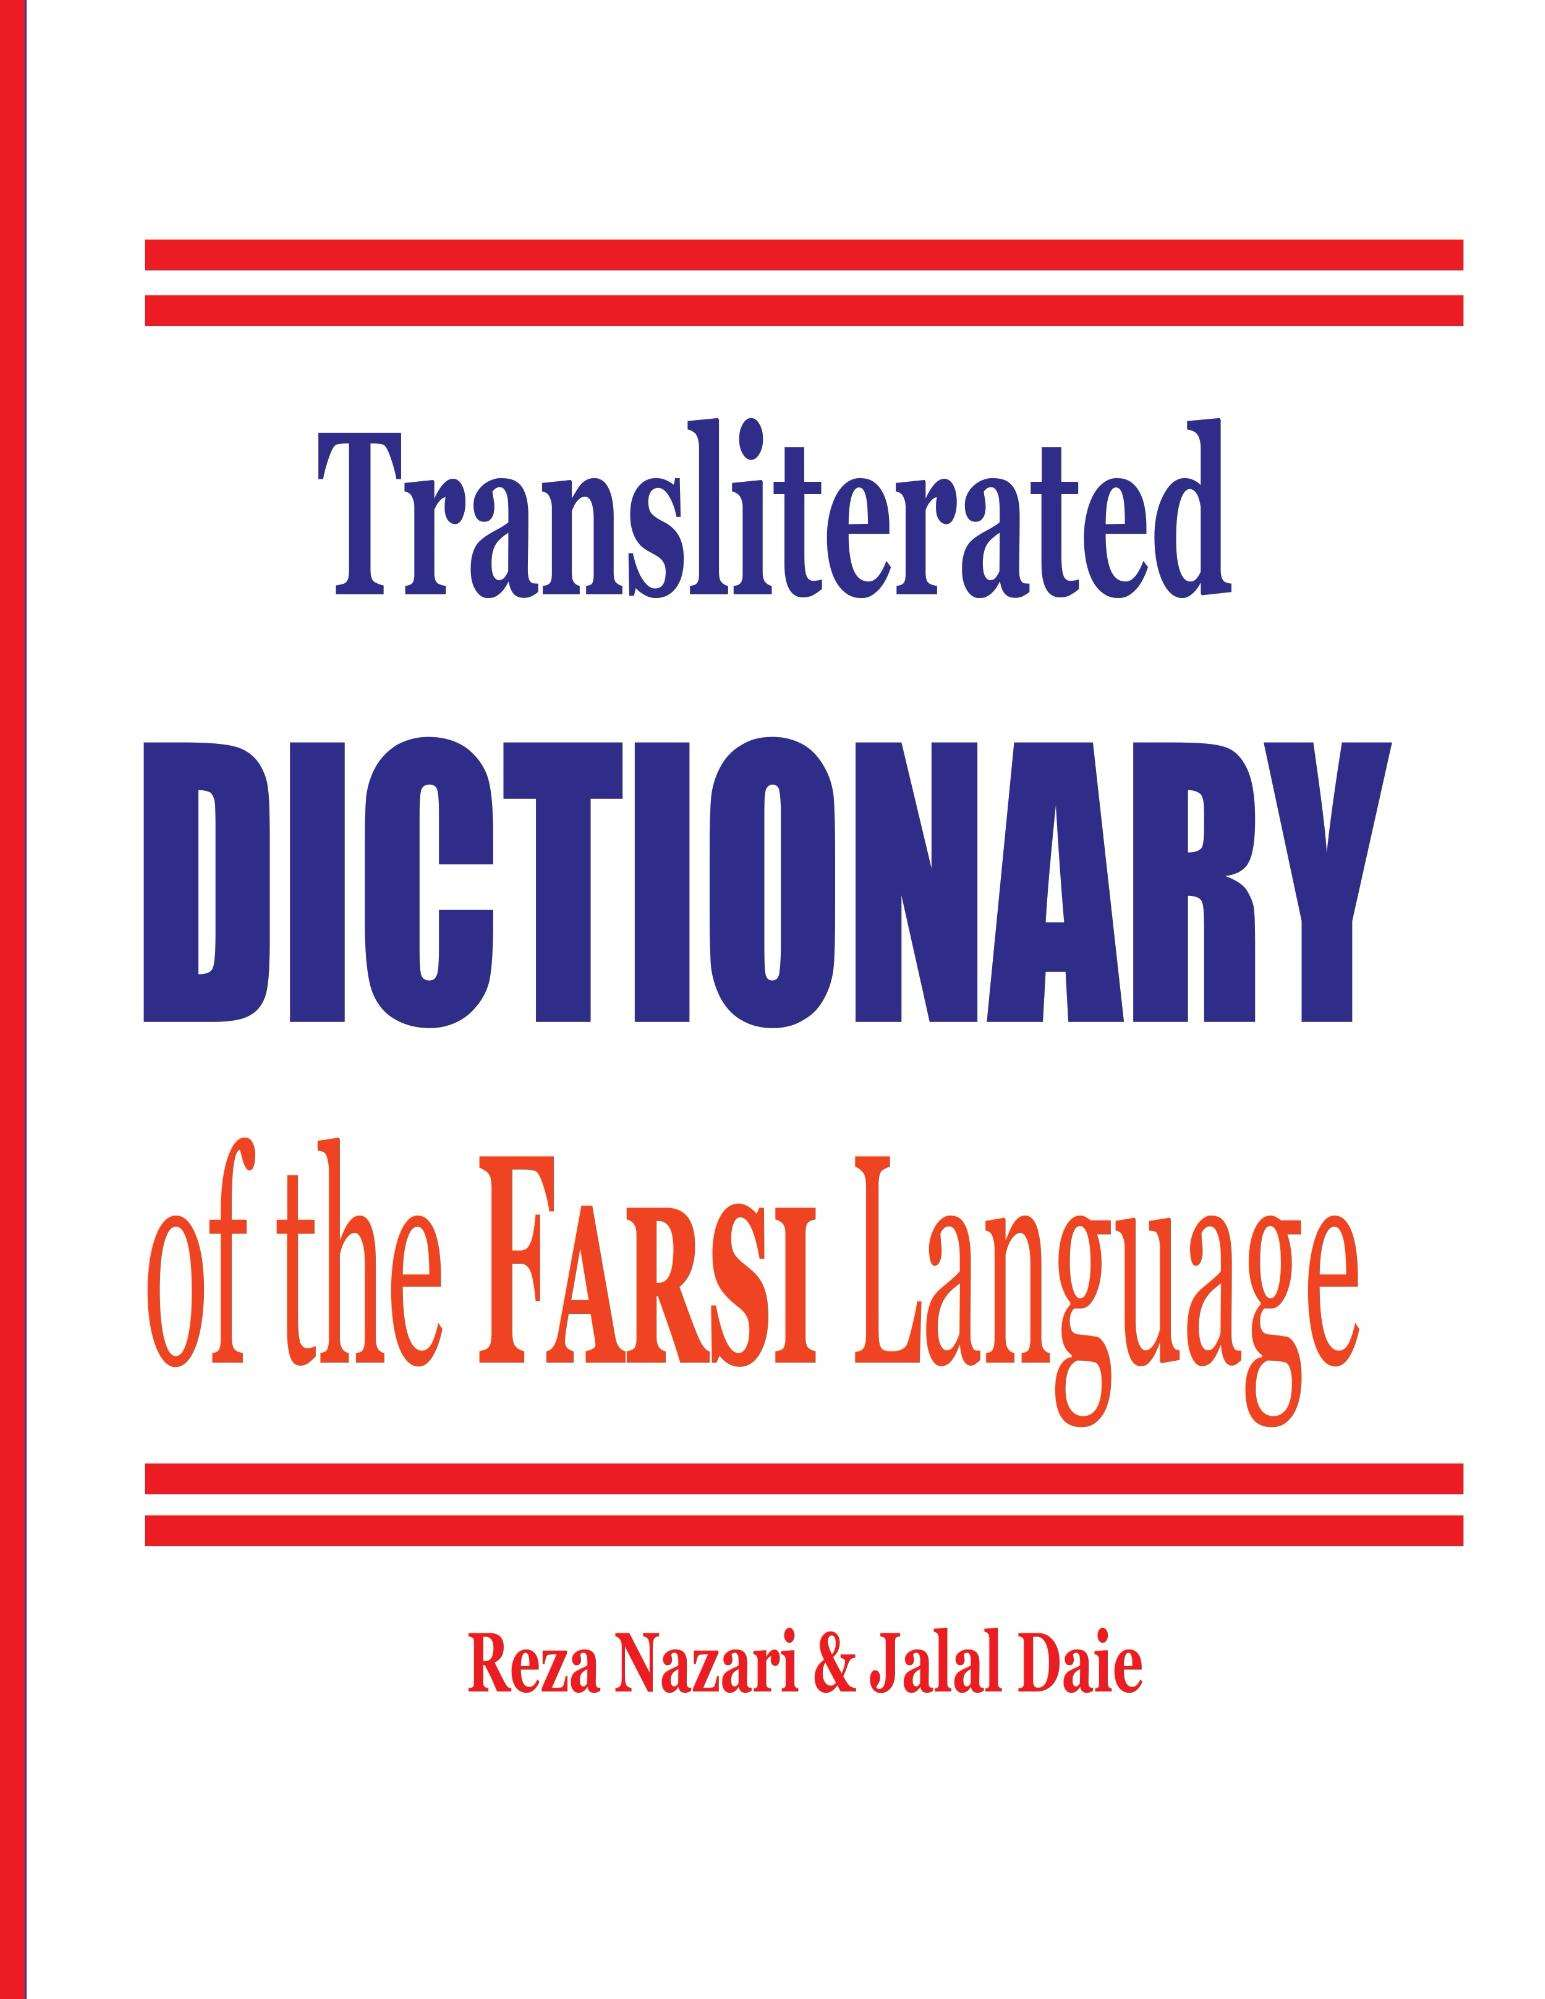 how to say how are you in farsi language